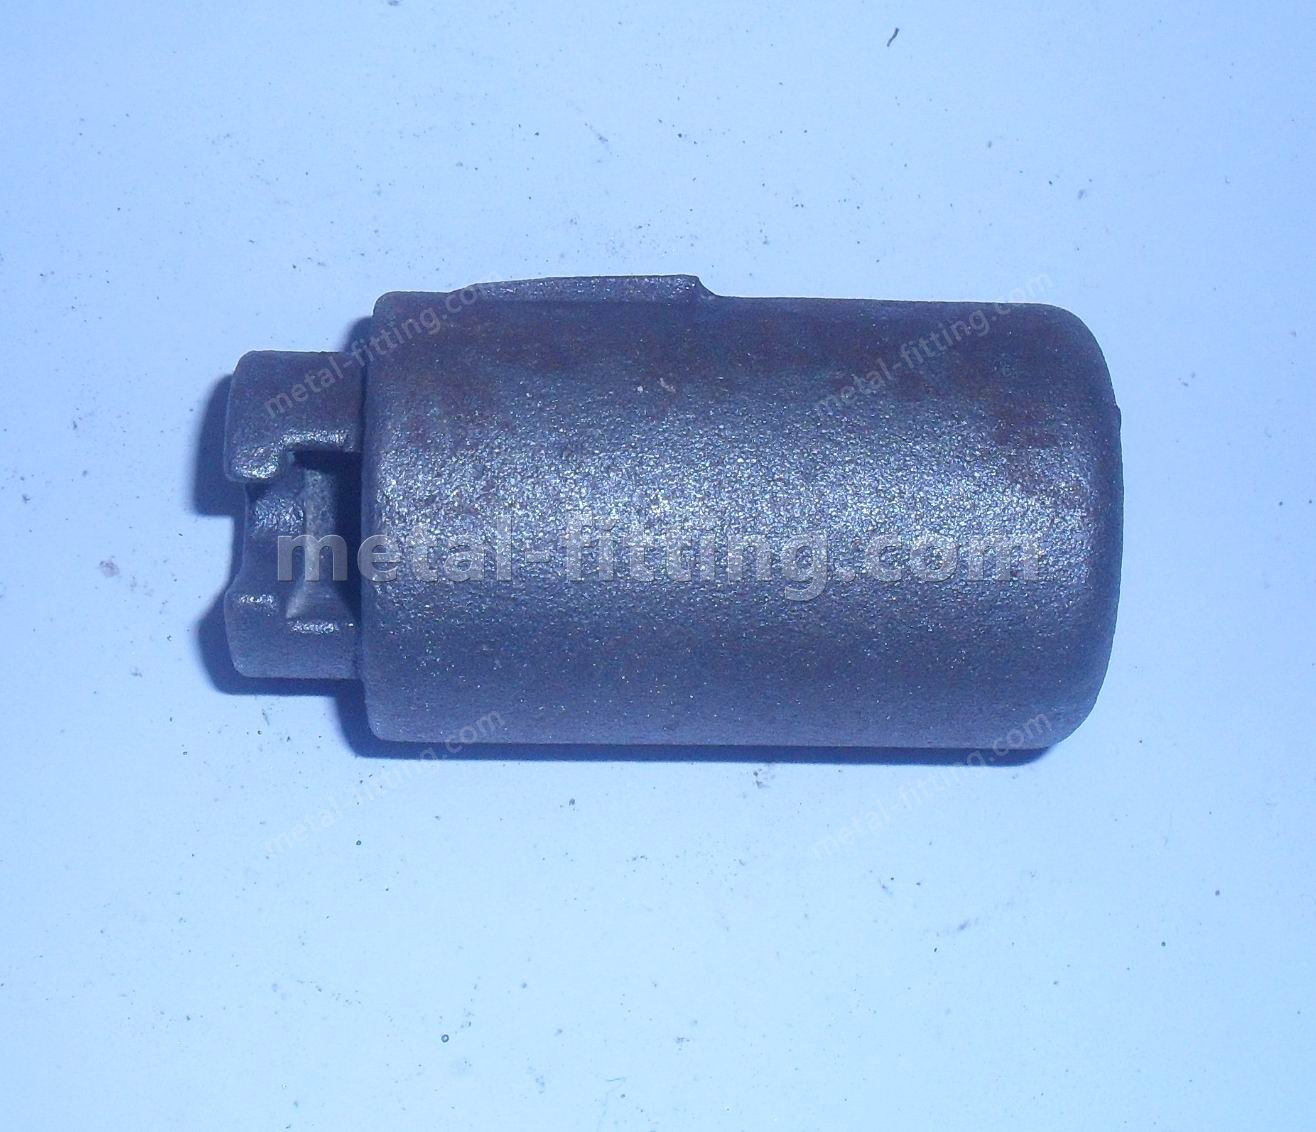 scaffolding base,building fitting,scaffolding accessories-SDC10767 (1)